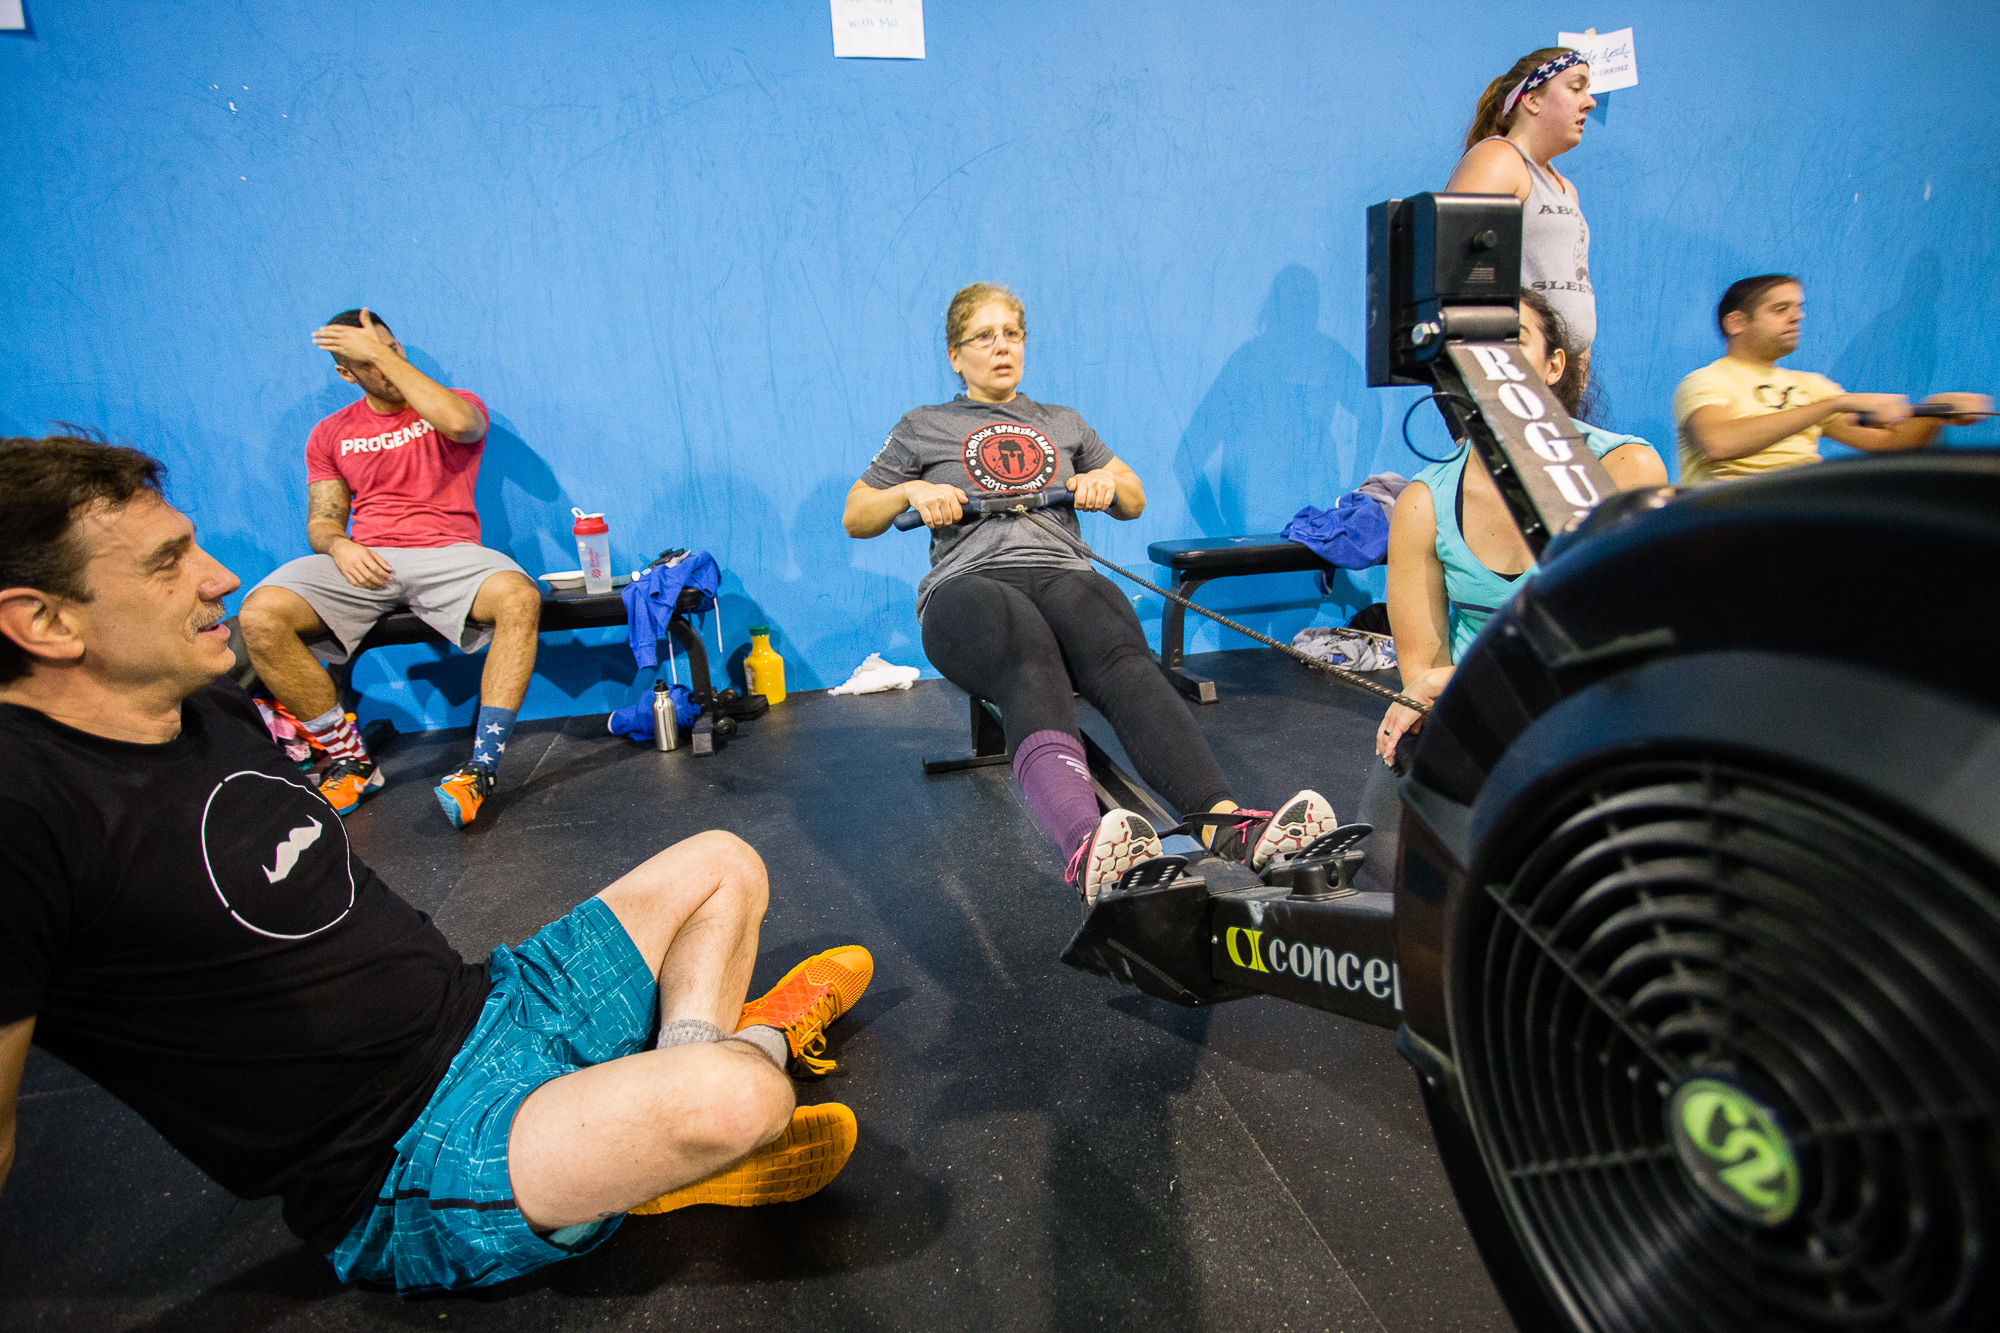 Paola, visibly thrilled to be rowing for her team in the CrossFit Aevitas Movember Row-a-thon event